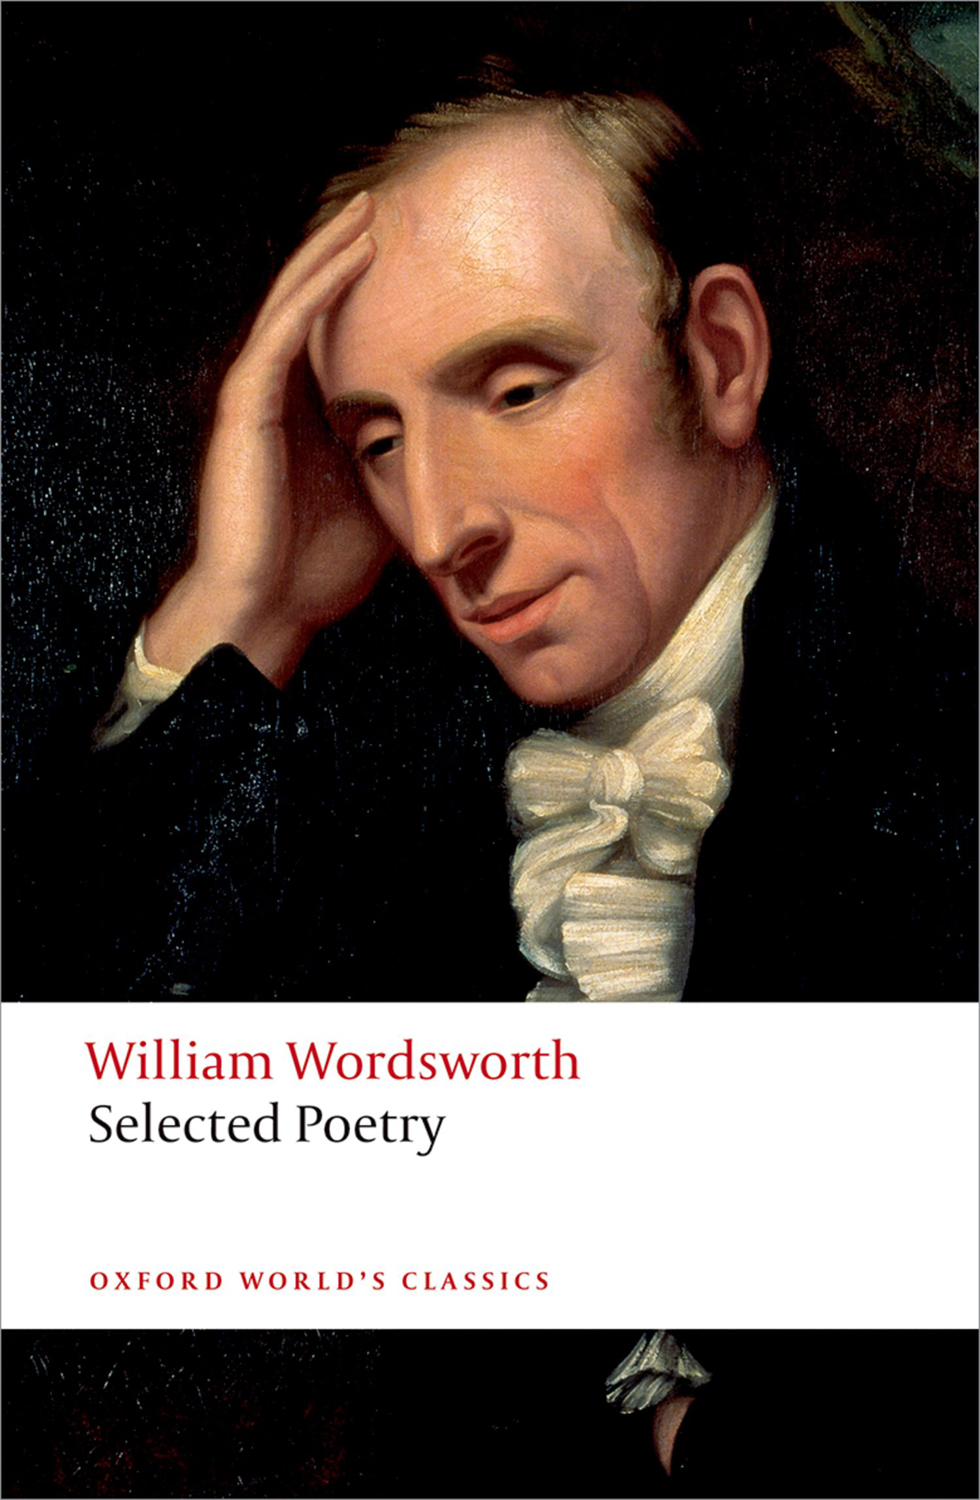 william wordsworth literary devices William wordsworth's (1770-1850) was written in 1806 after the death of his younger brother, john wordsworth john, the captain of a british ship, drowned at sea february 6, 1805 not only was john one of wordsworth's closest relatives, he was also wordsworth's last hope of financial stability.